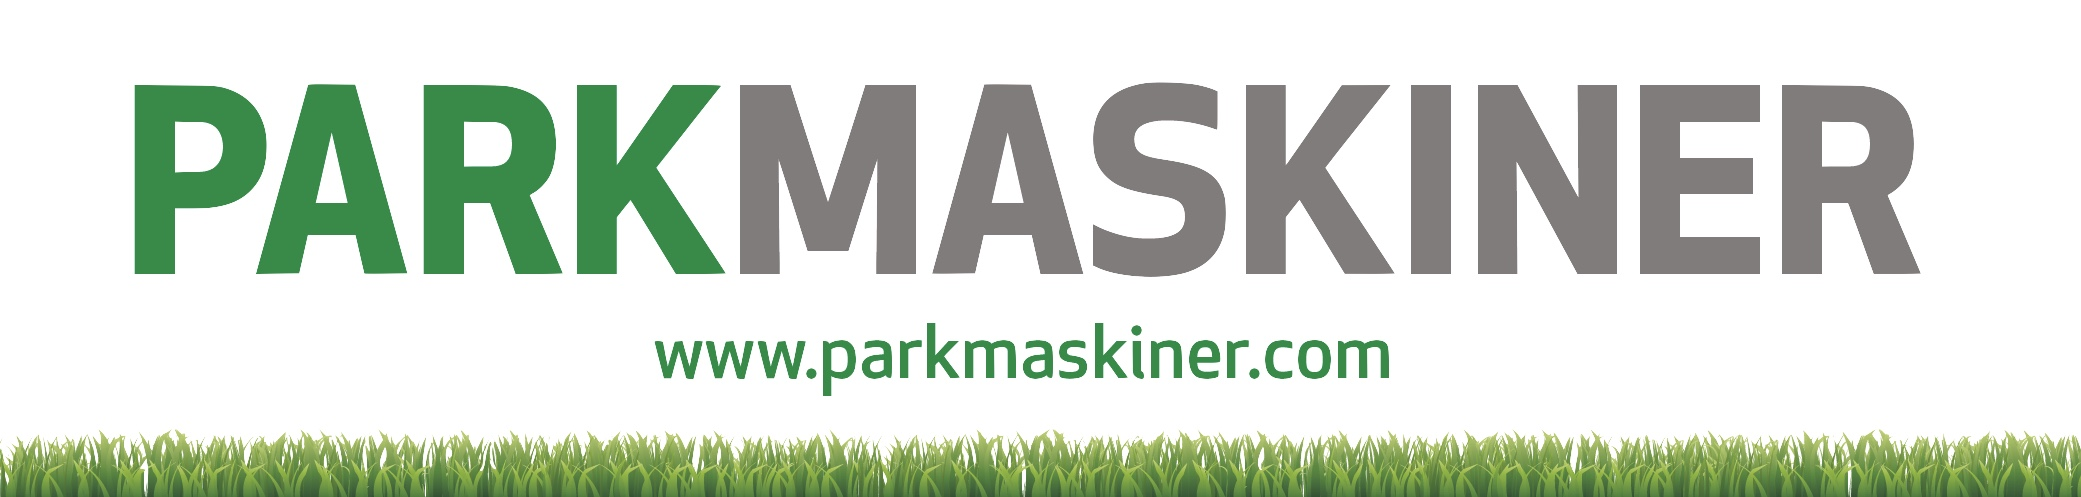 Parkmaskiner AS